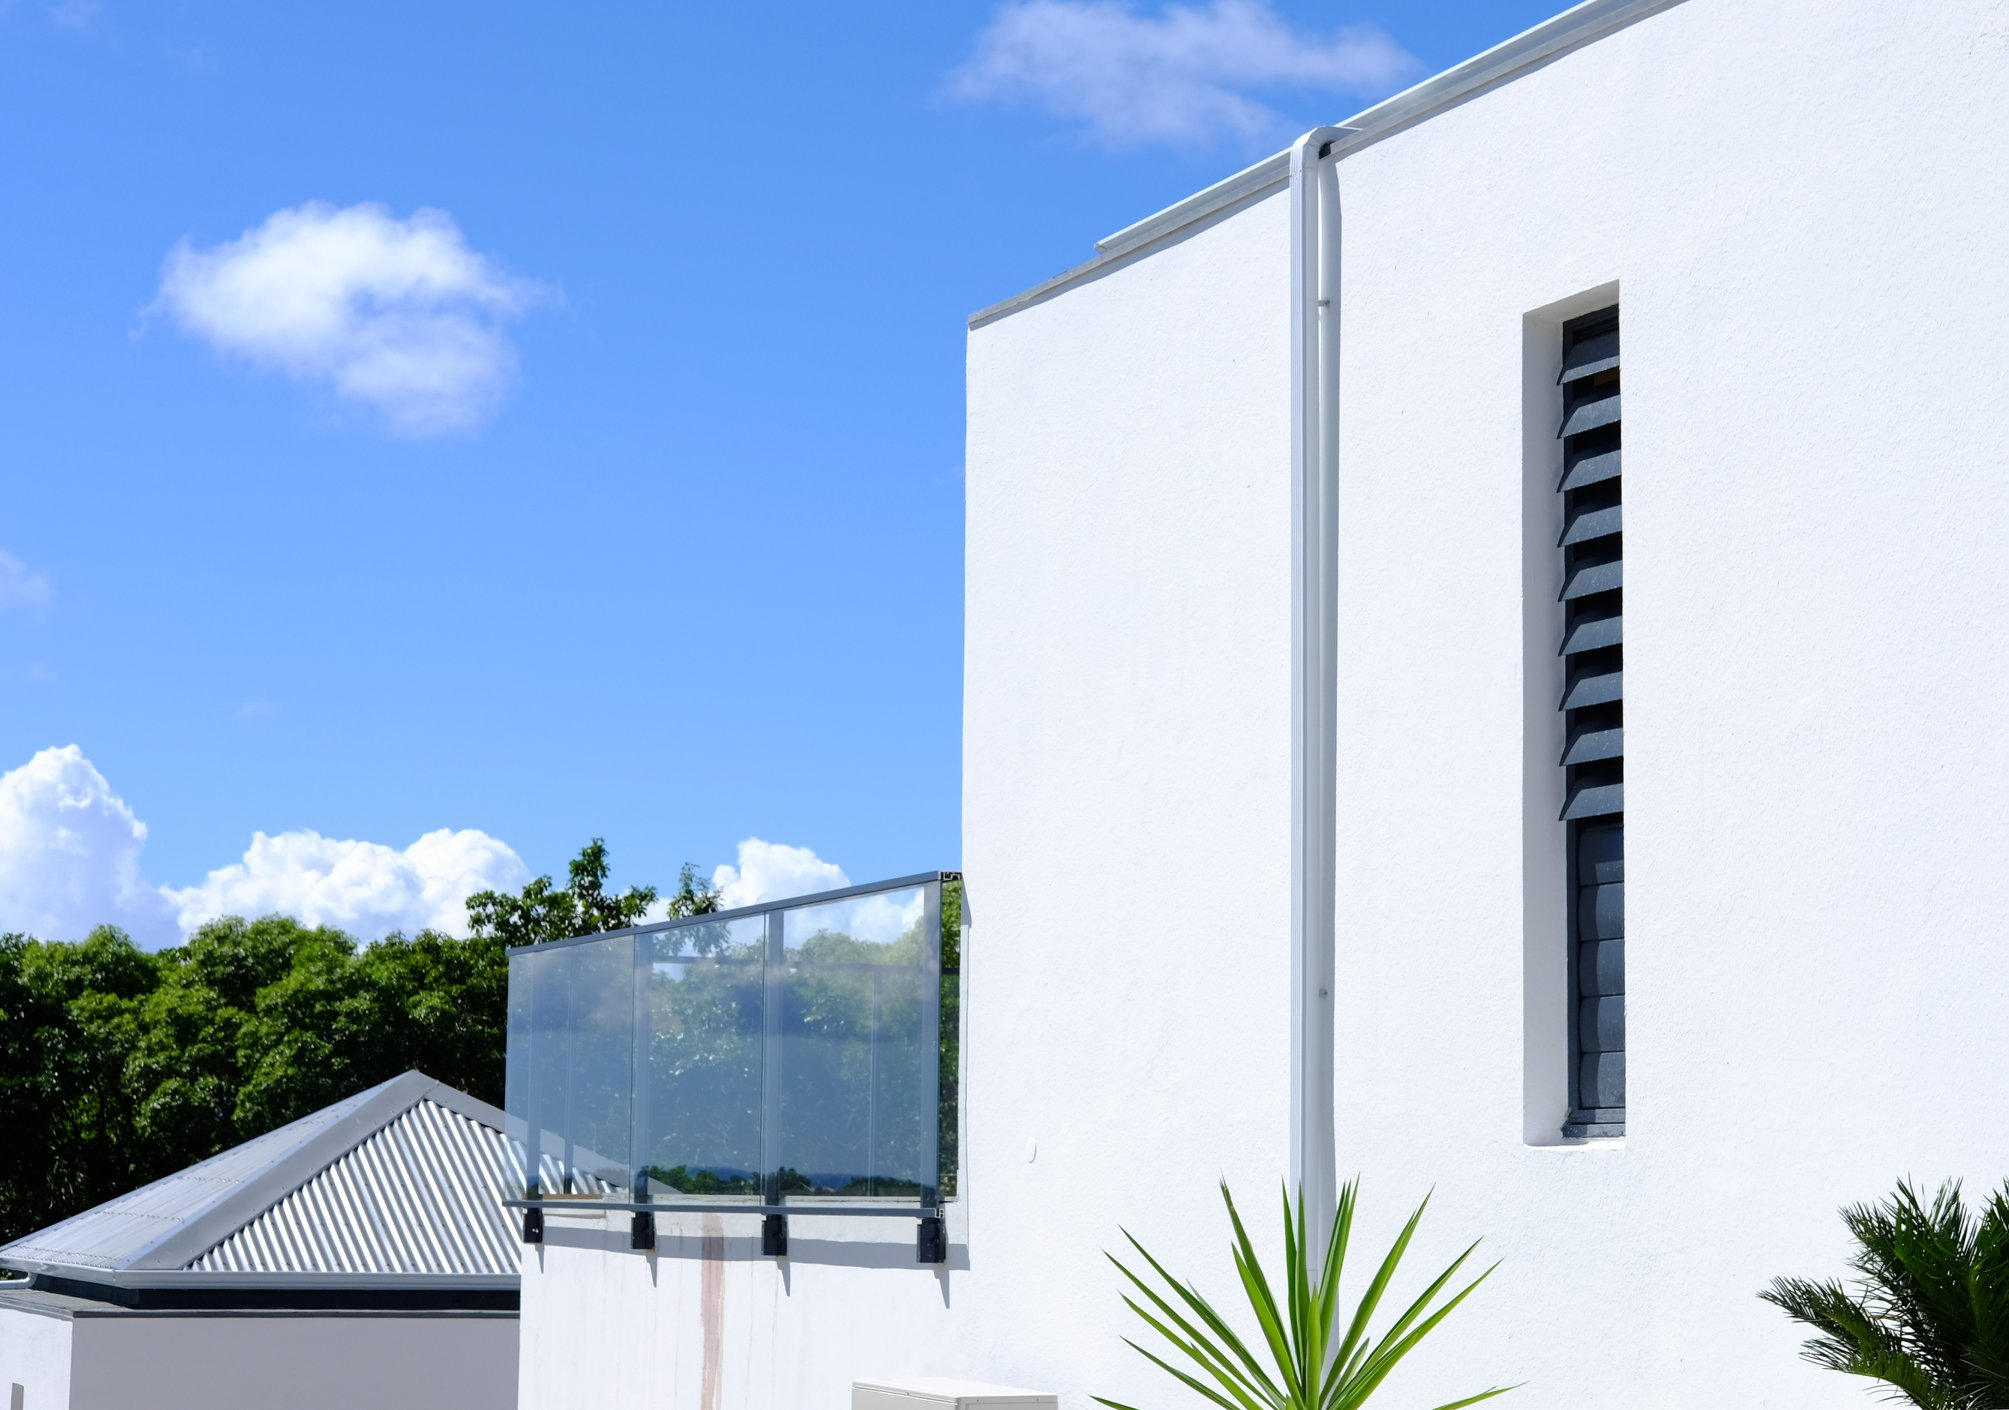 garde-corps-guadeloupe-aluminium-verre-technal-securite-normes-chute-protection-vide